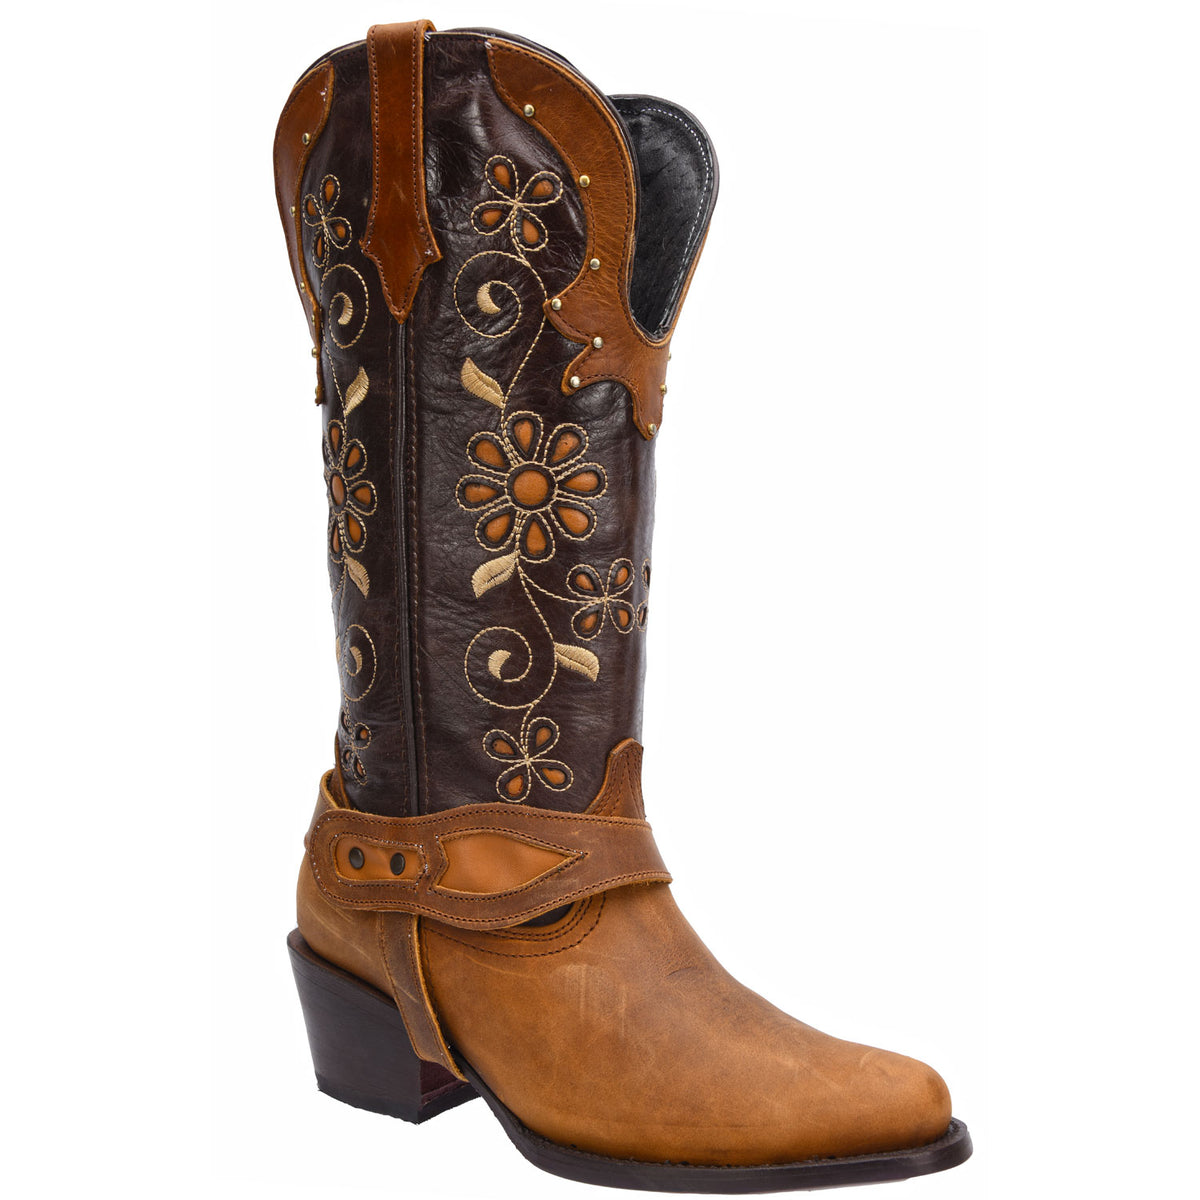 Genuine Leather Boot WD567-568